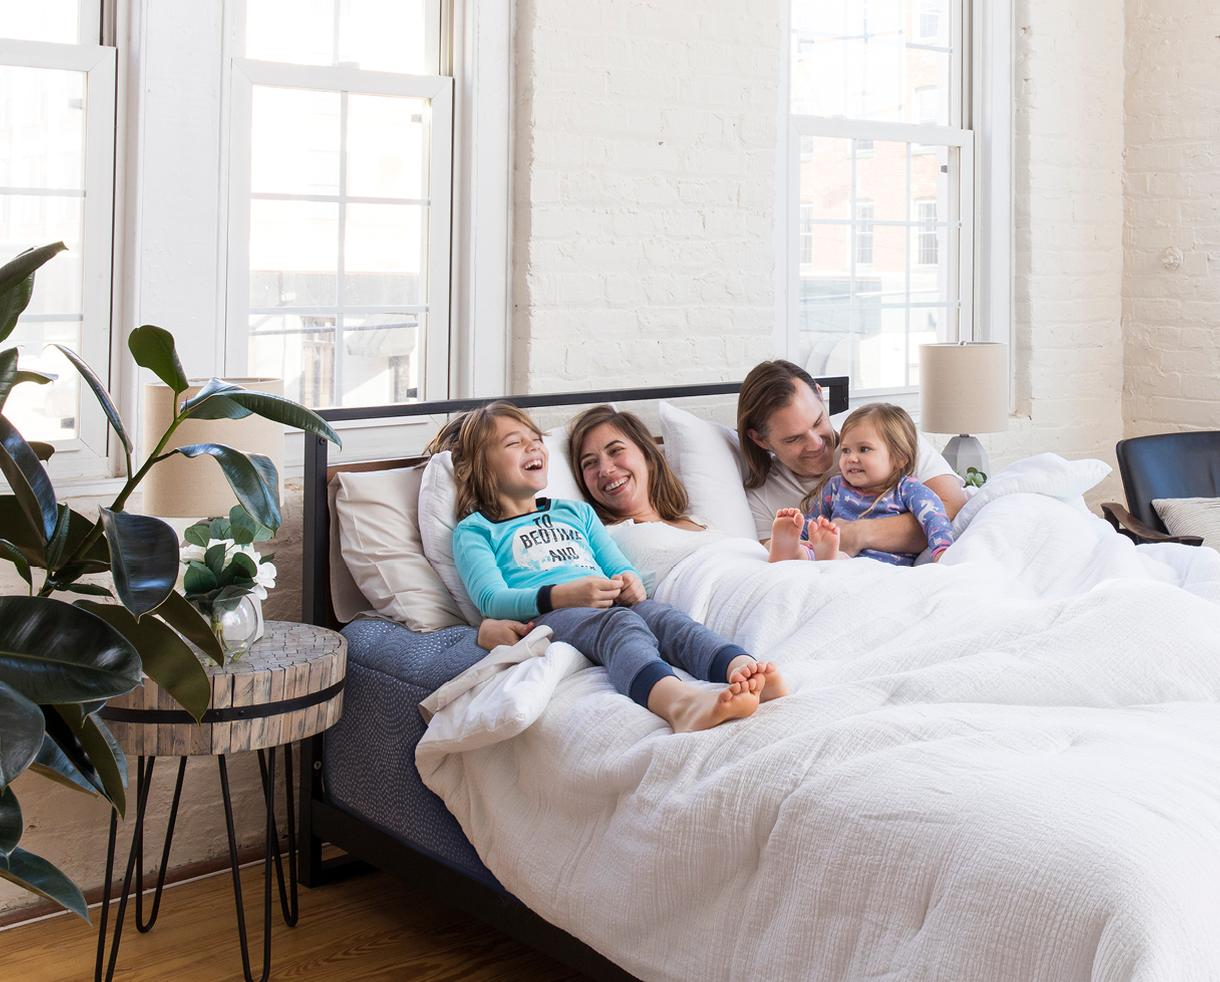 Extra 40% Off Luuf Mattresses + FREE Shipping!